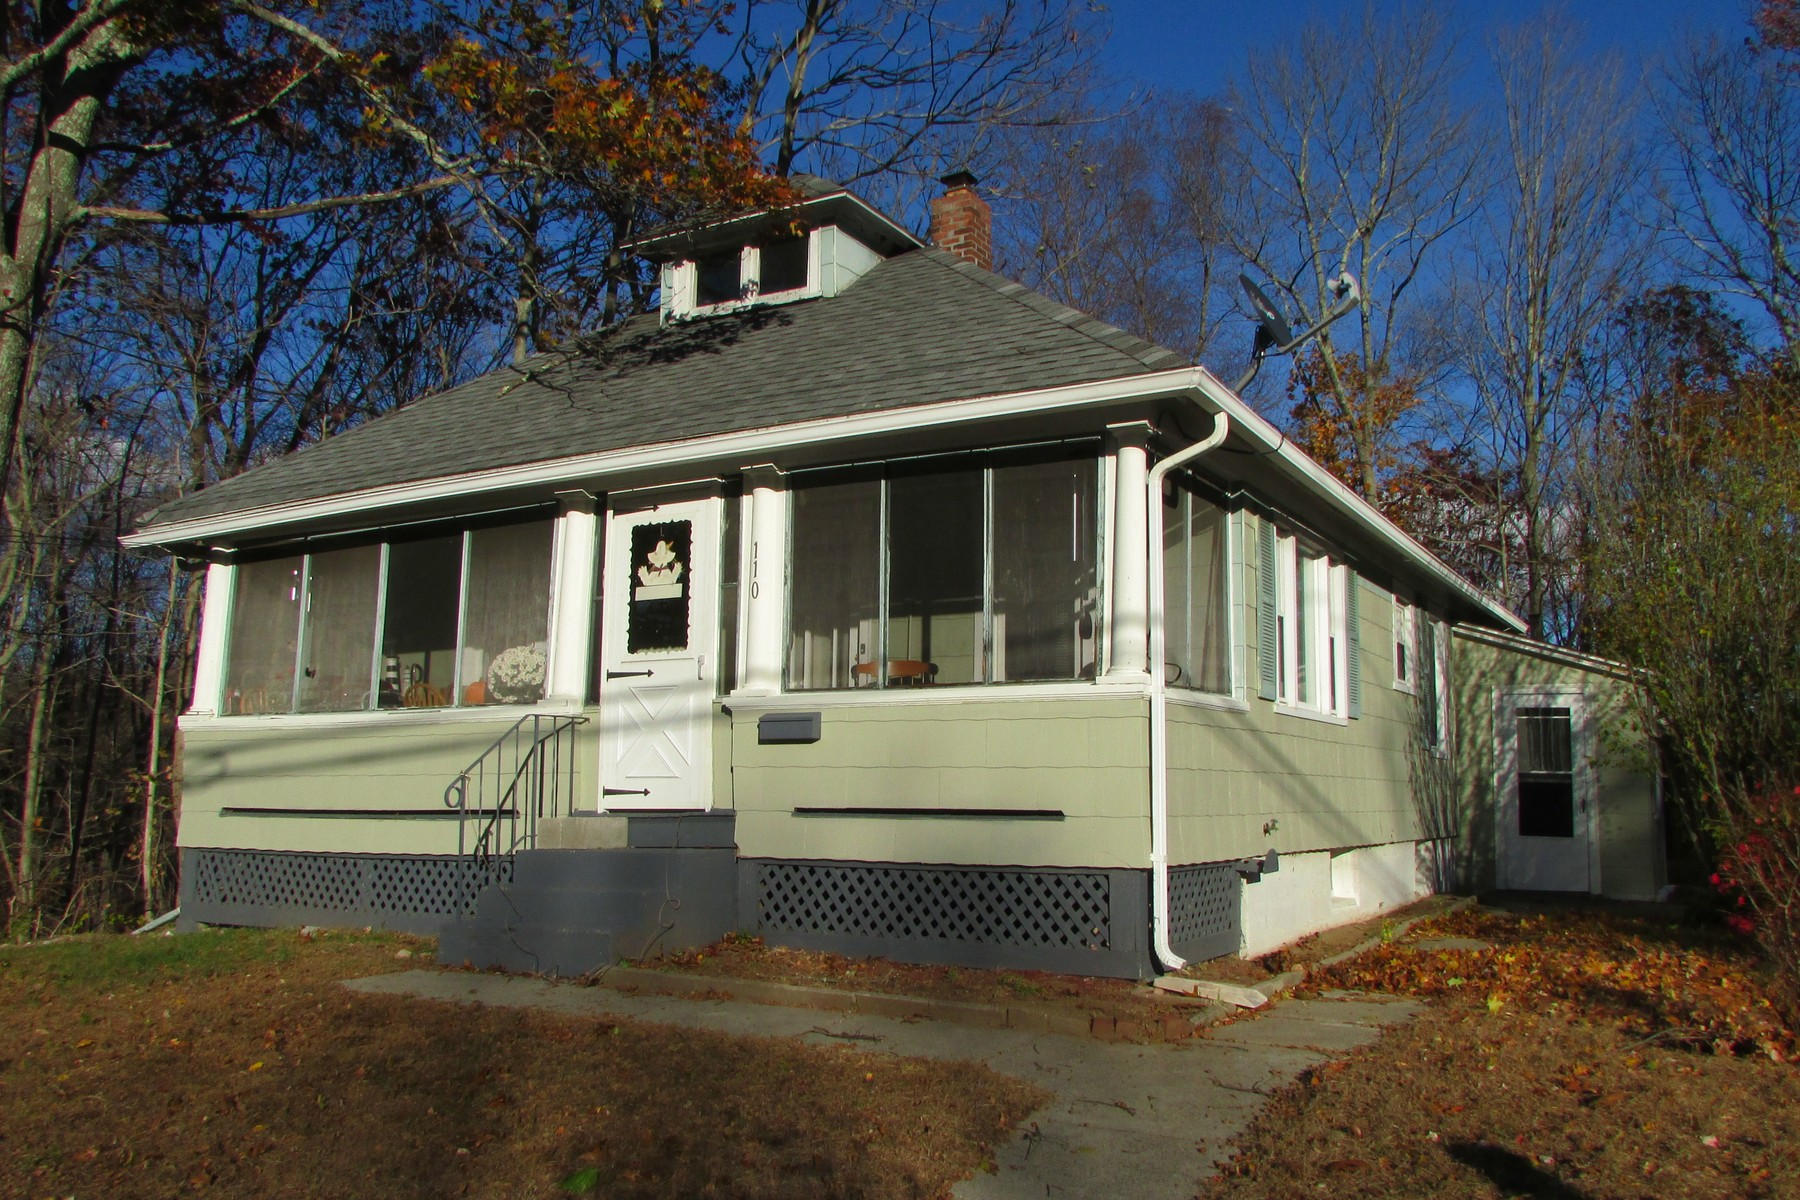 Casa Unifamiliar por un Venta en Nicely Renovated Bungalow 110 Palmer St Norwich, Connecticut 06360 Estados Unidos